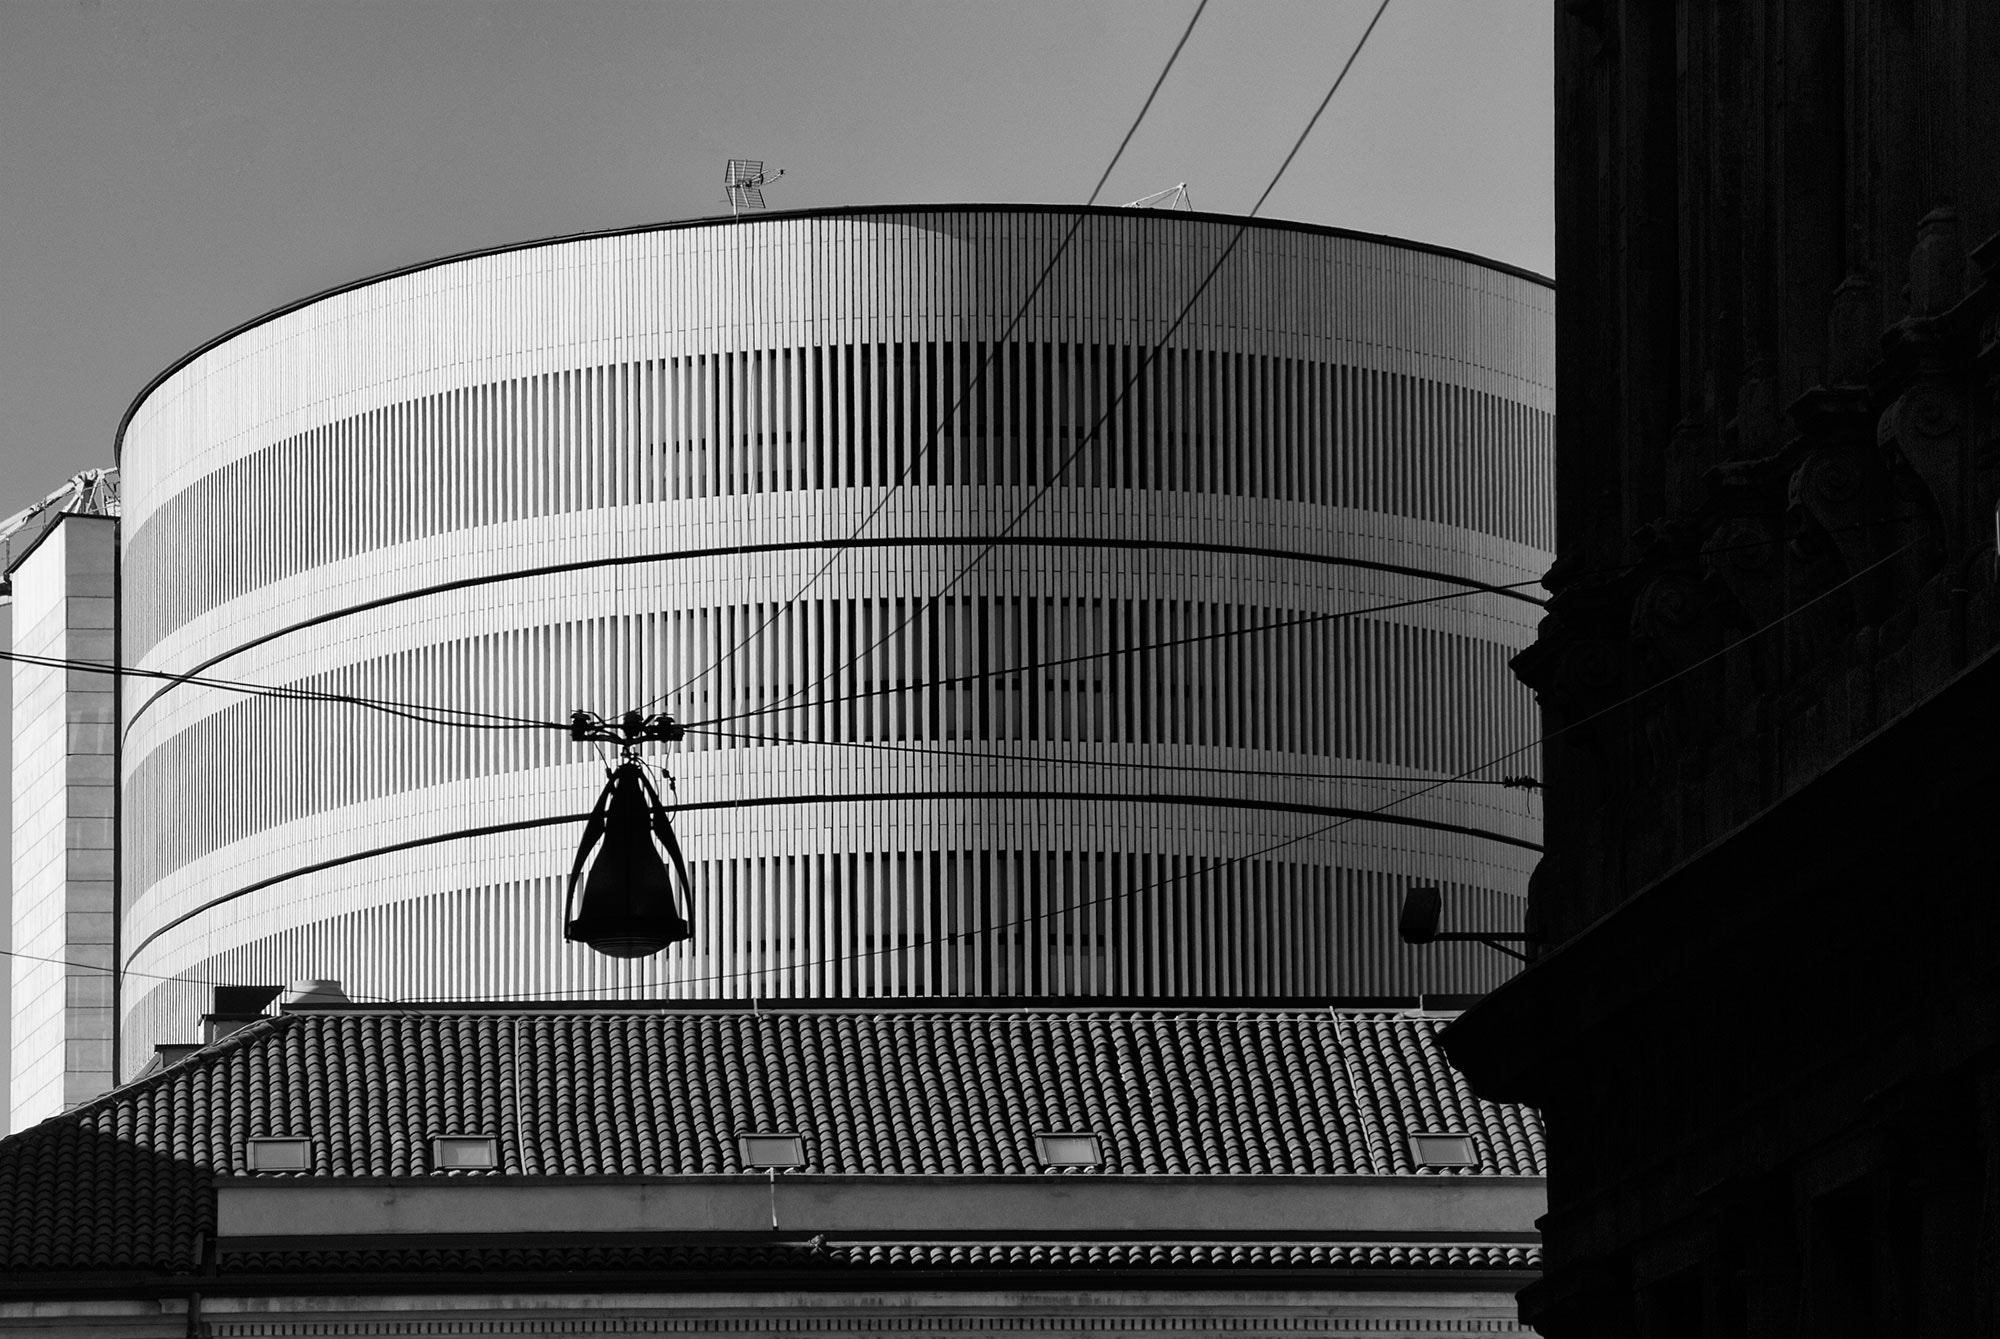 Photograph Geometrie Milanesi. by Marcello Ceraulo on 500px